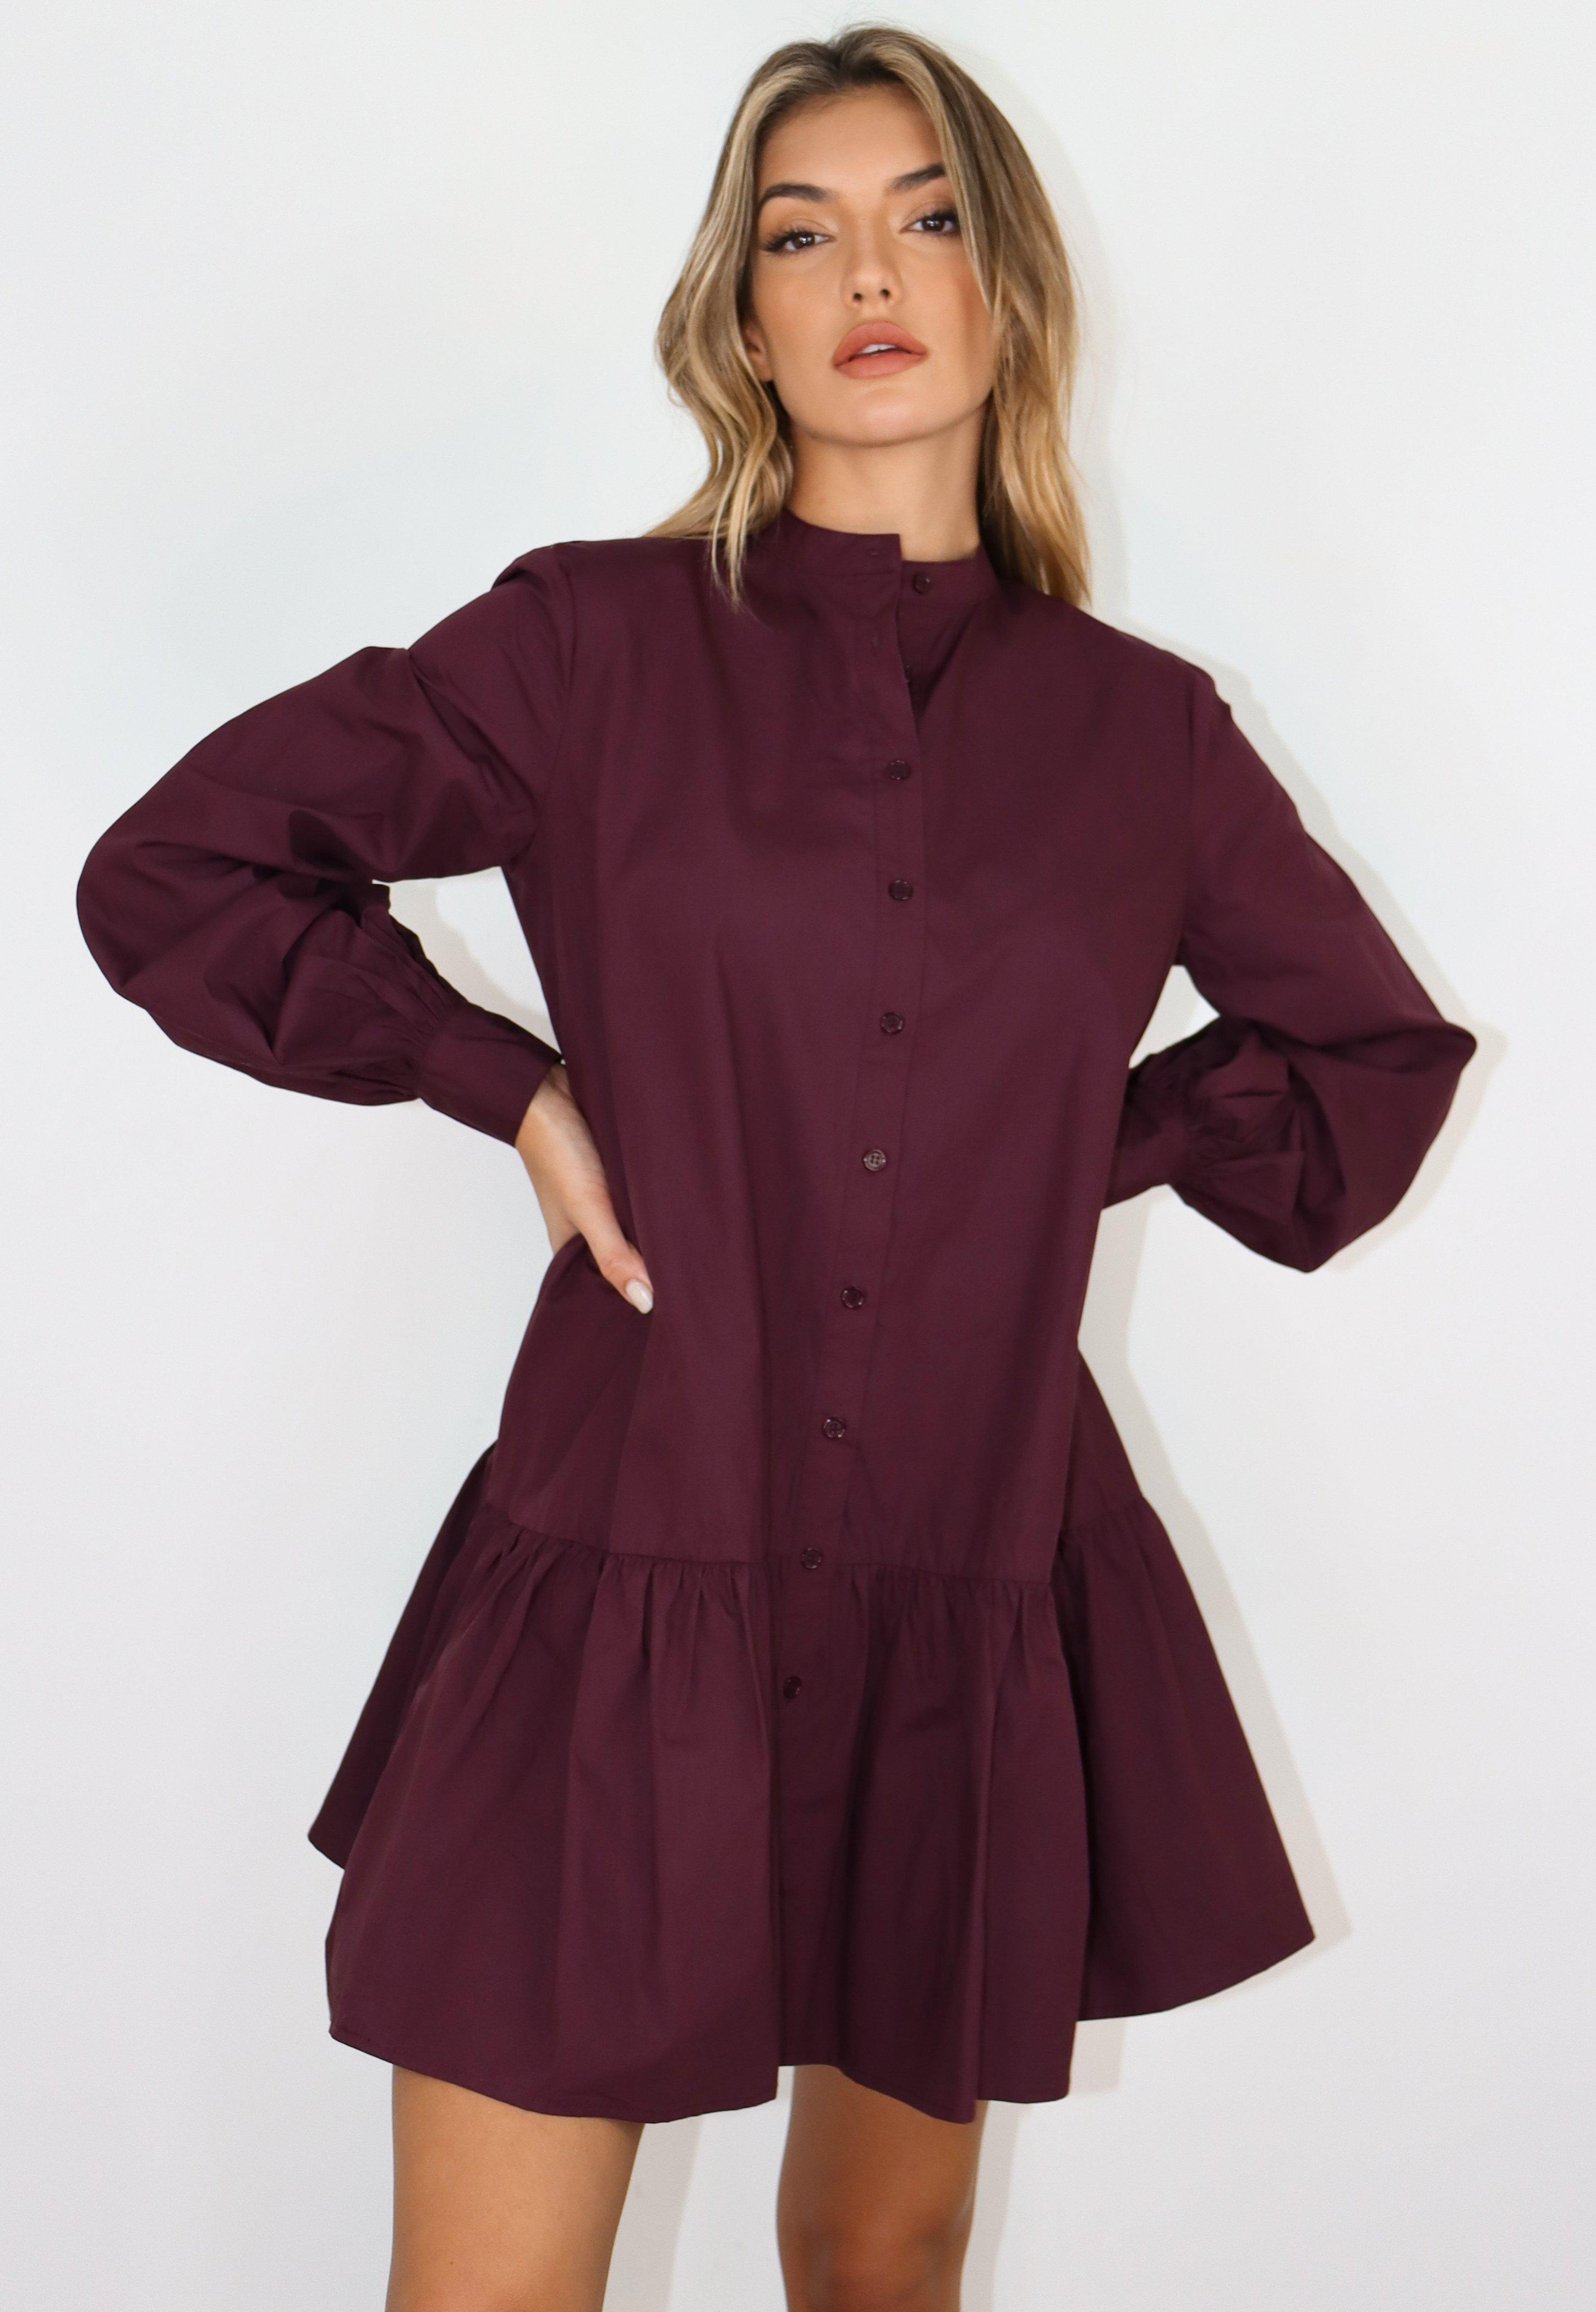 Robe Chemise Smockee Prune Oversize A Col Officier Missguided